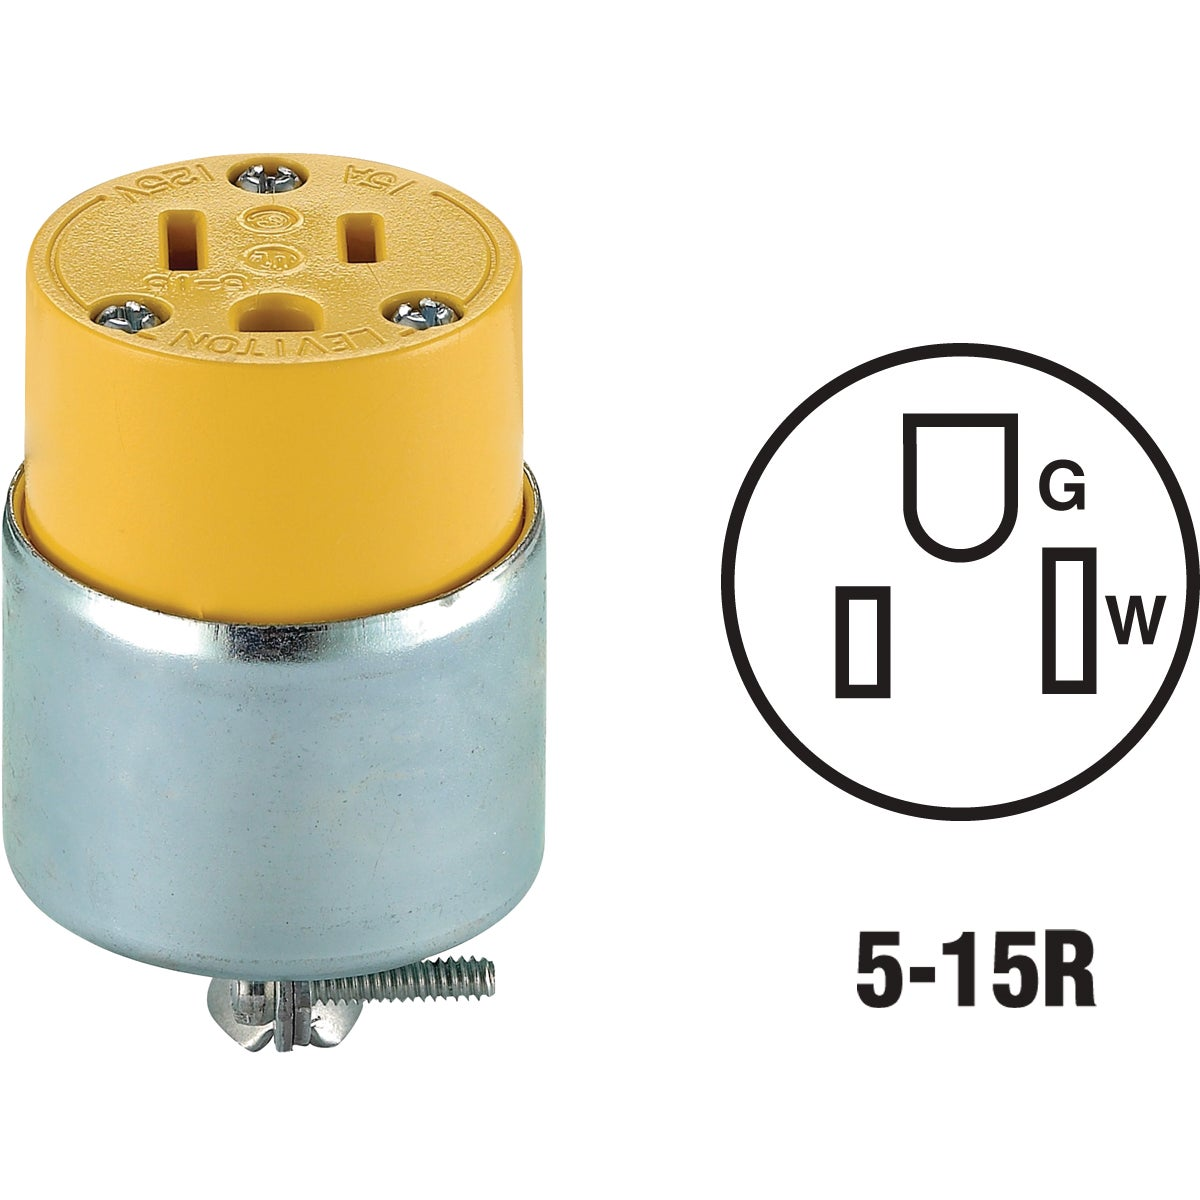 YEL ARMORED CONNECTOR - 515CA by Leviton Mfg Co